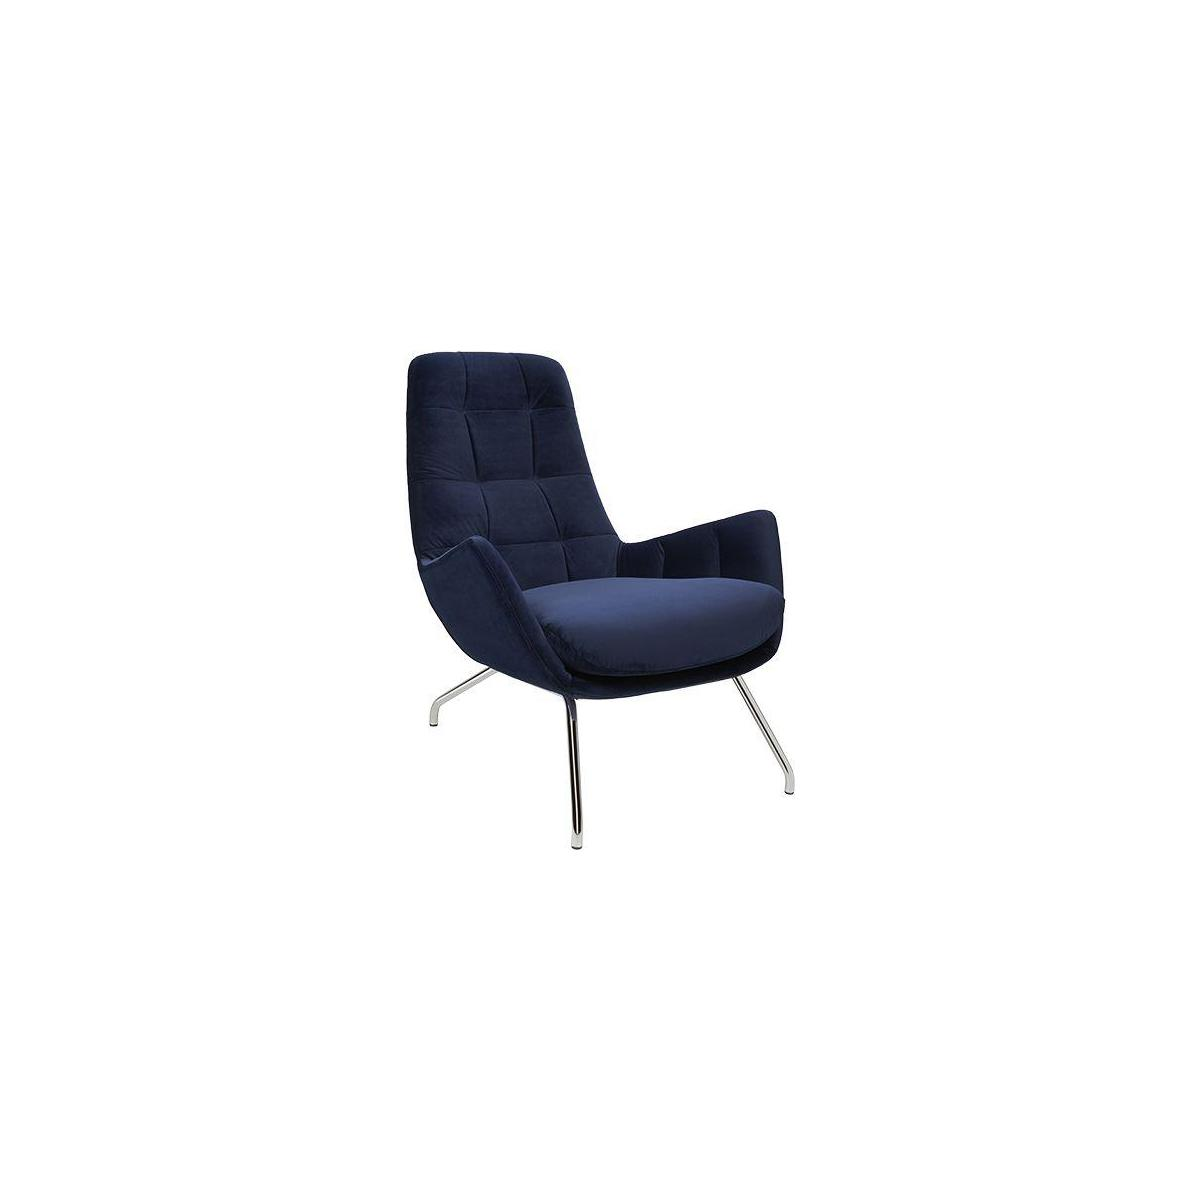 Armchair in Super Velvet fabric, dark blue with chromed metal legs n°1